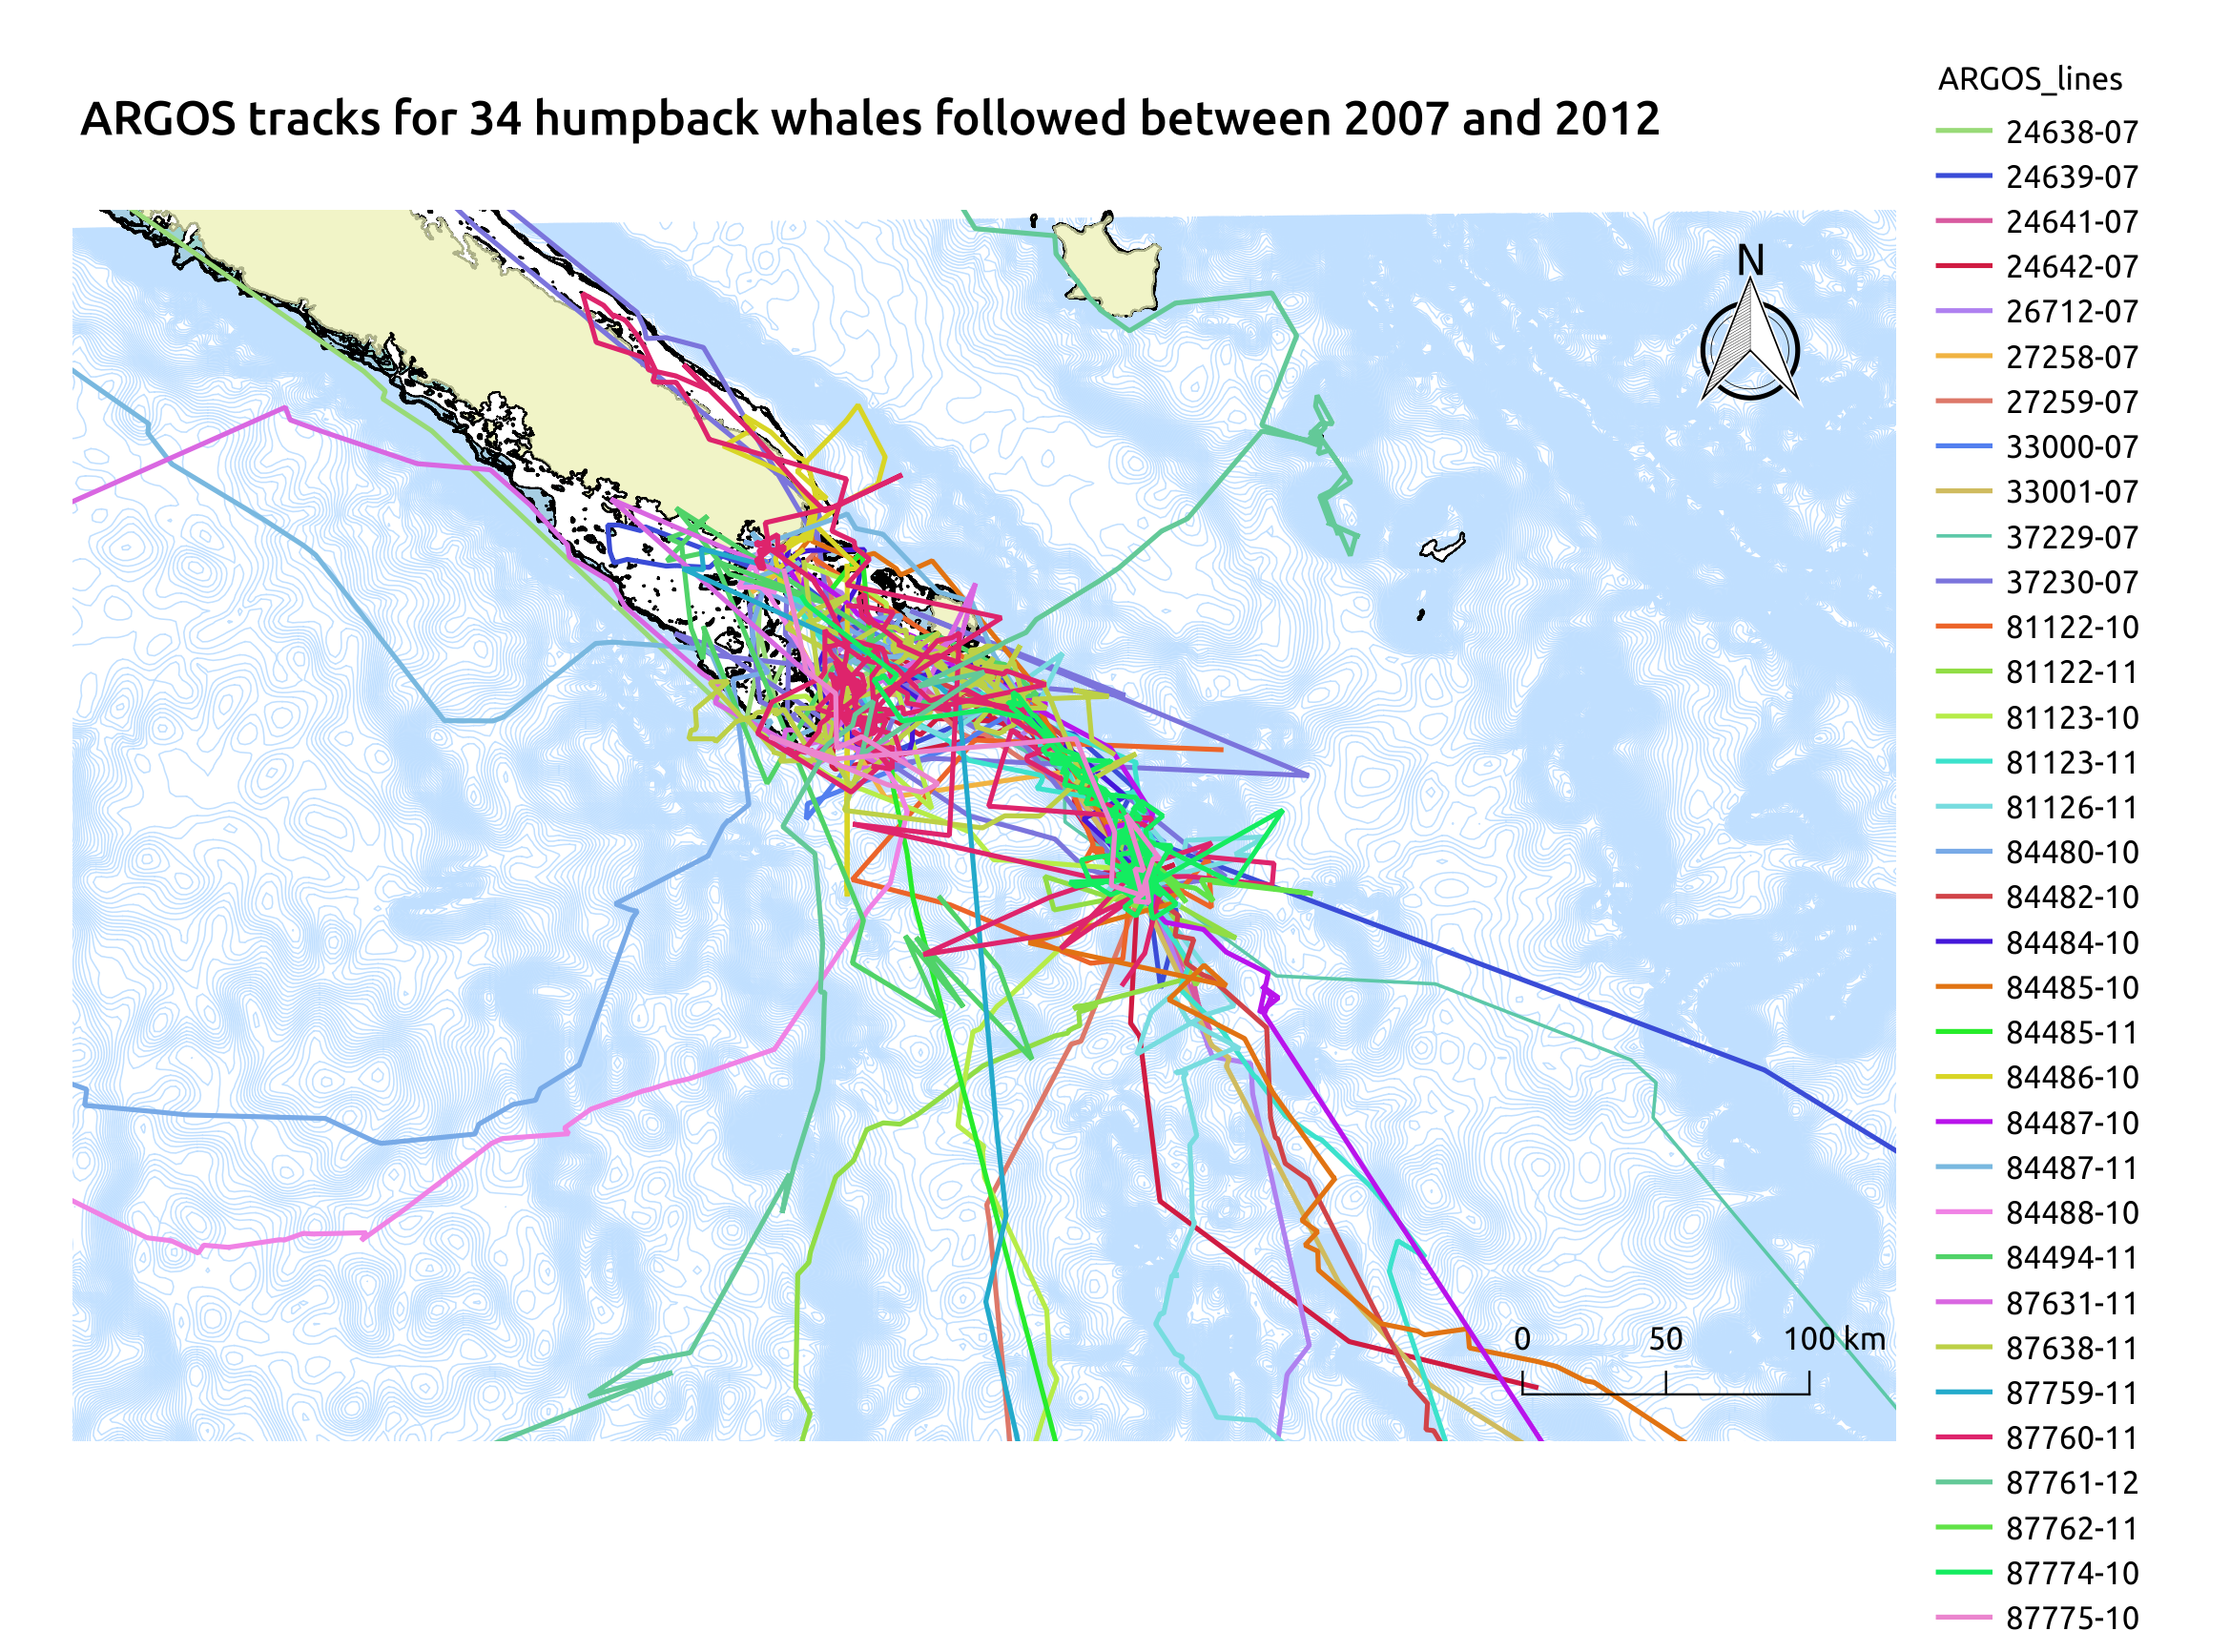 Figure 2: ARGOS tracking of 34 humpback whales tagged between 2007 and 2012 in the South Lagoon. The Antigonia seamount and Torch Bank are completely covered by tracklines.